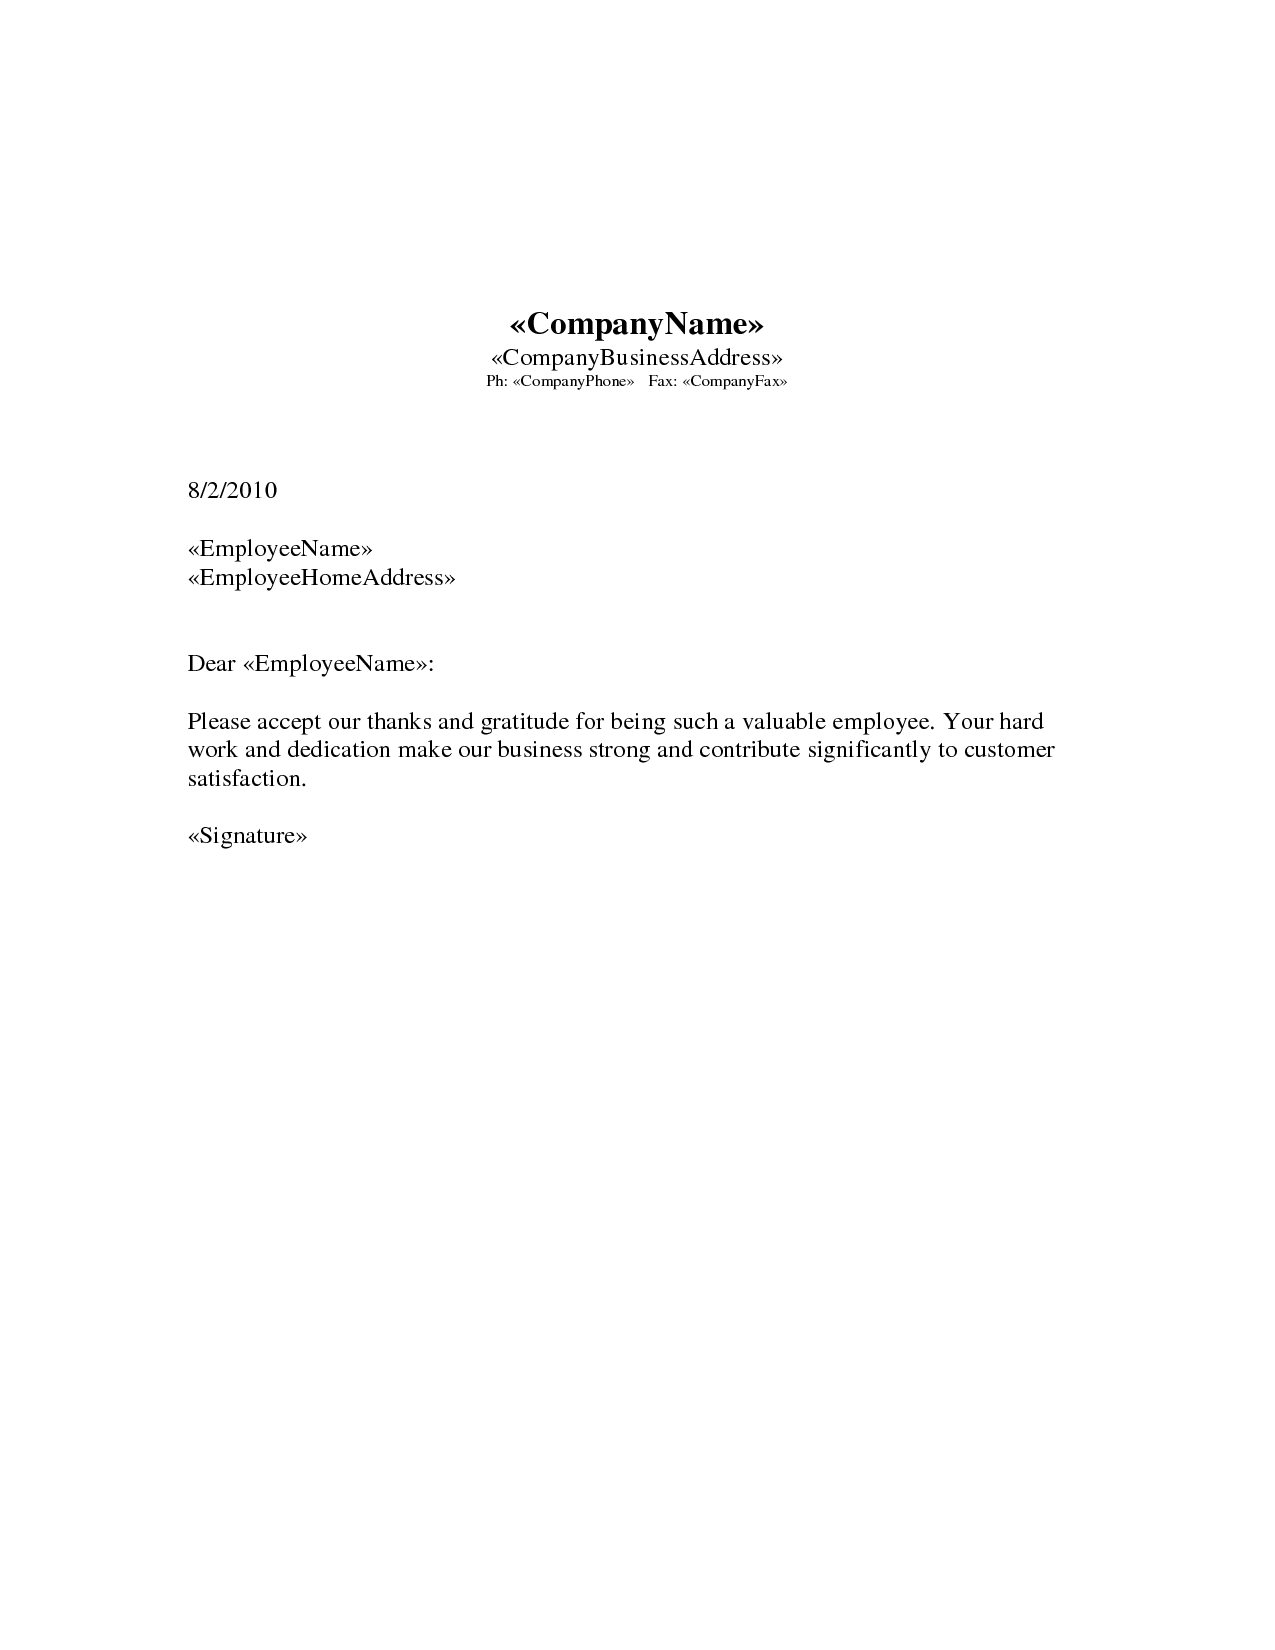 appreciation letter | images of employee appreciation letter doc